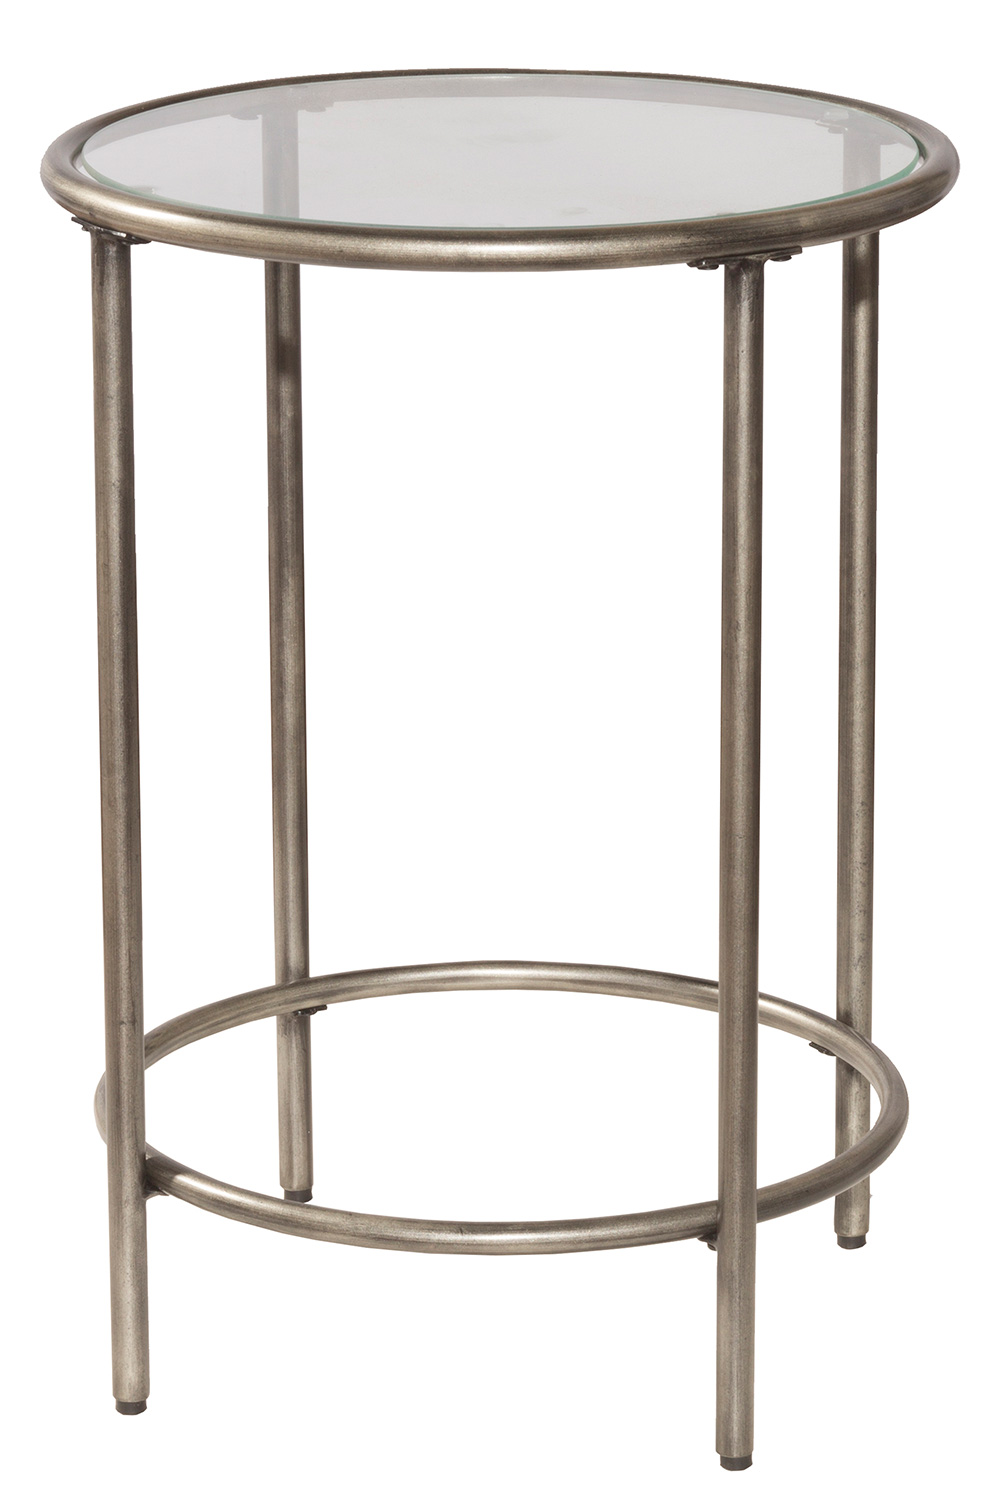 Hillsdale Corbin End Table with Top Glass Shelf - Silver/Black